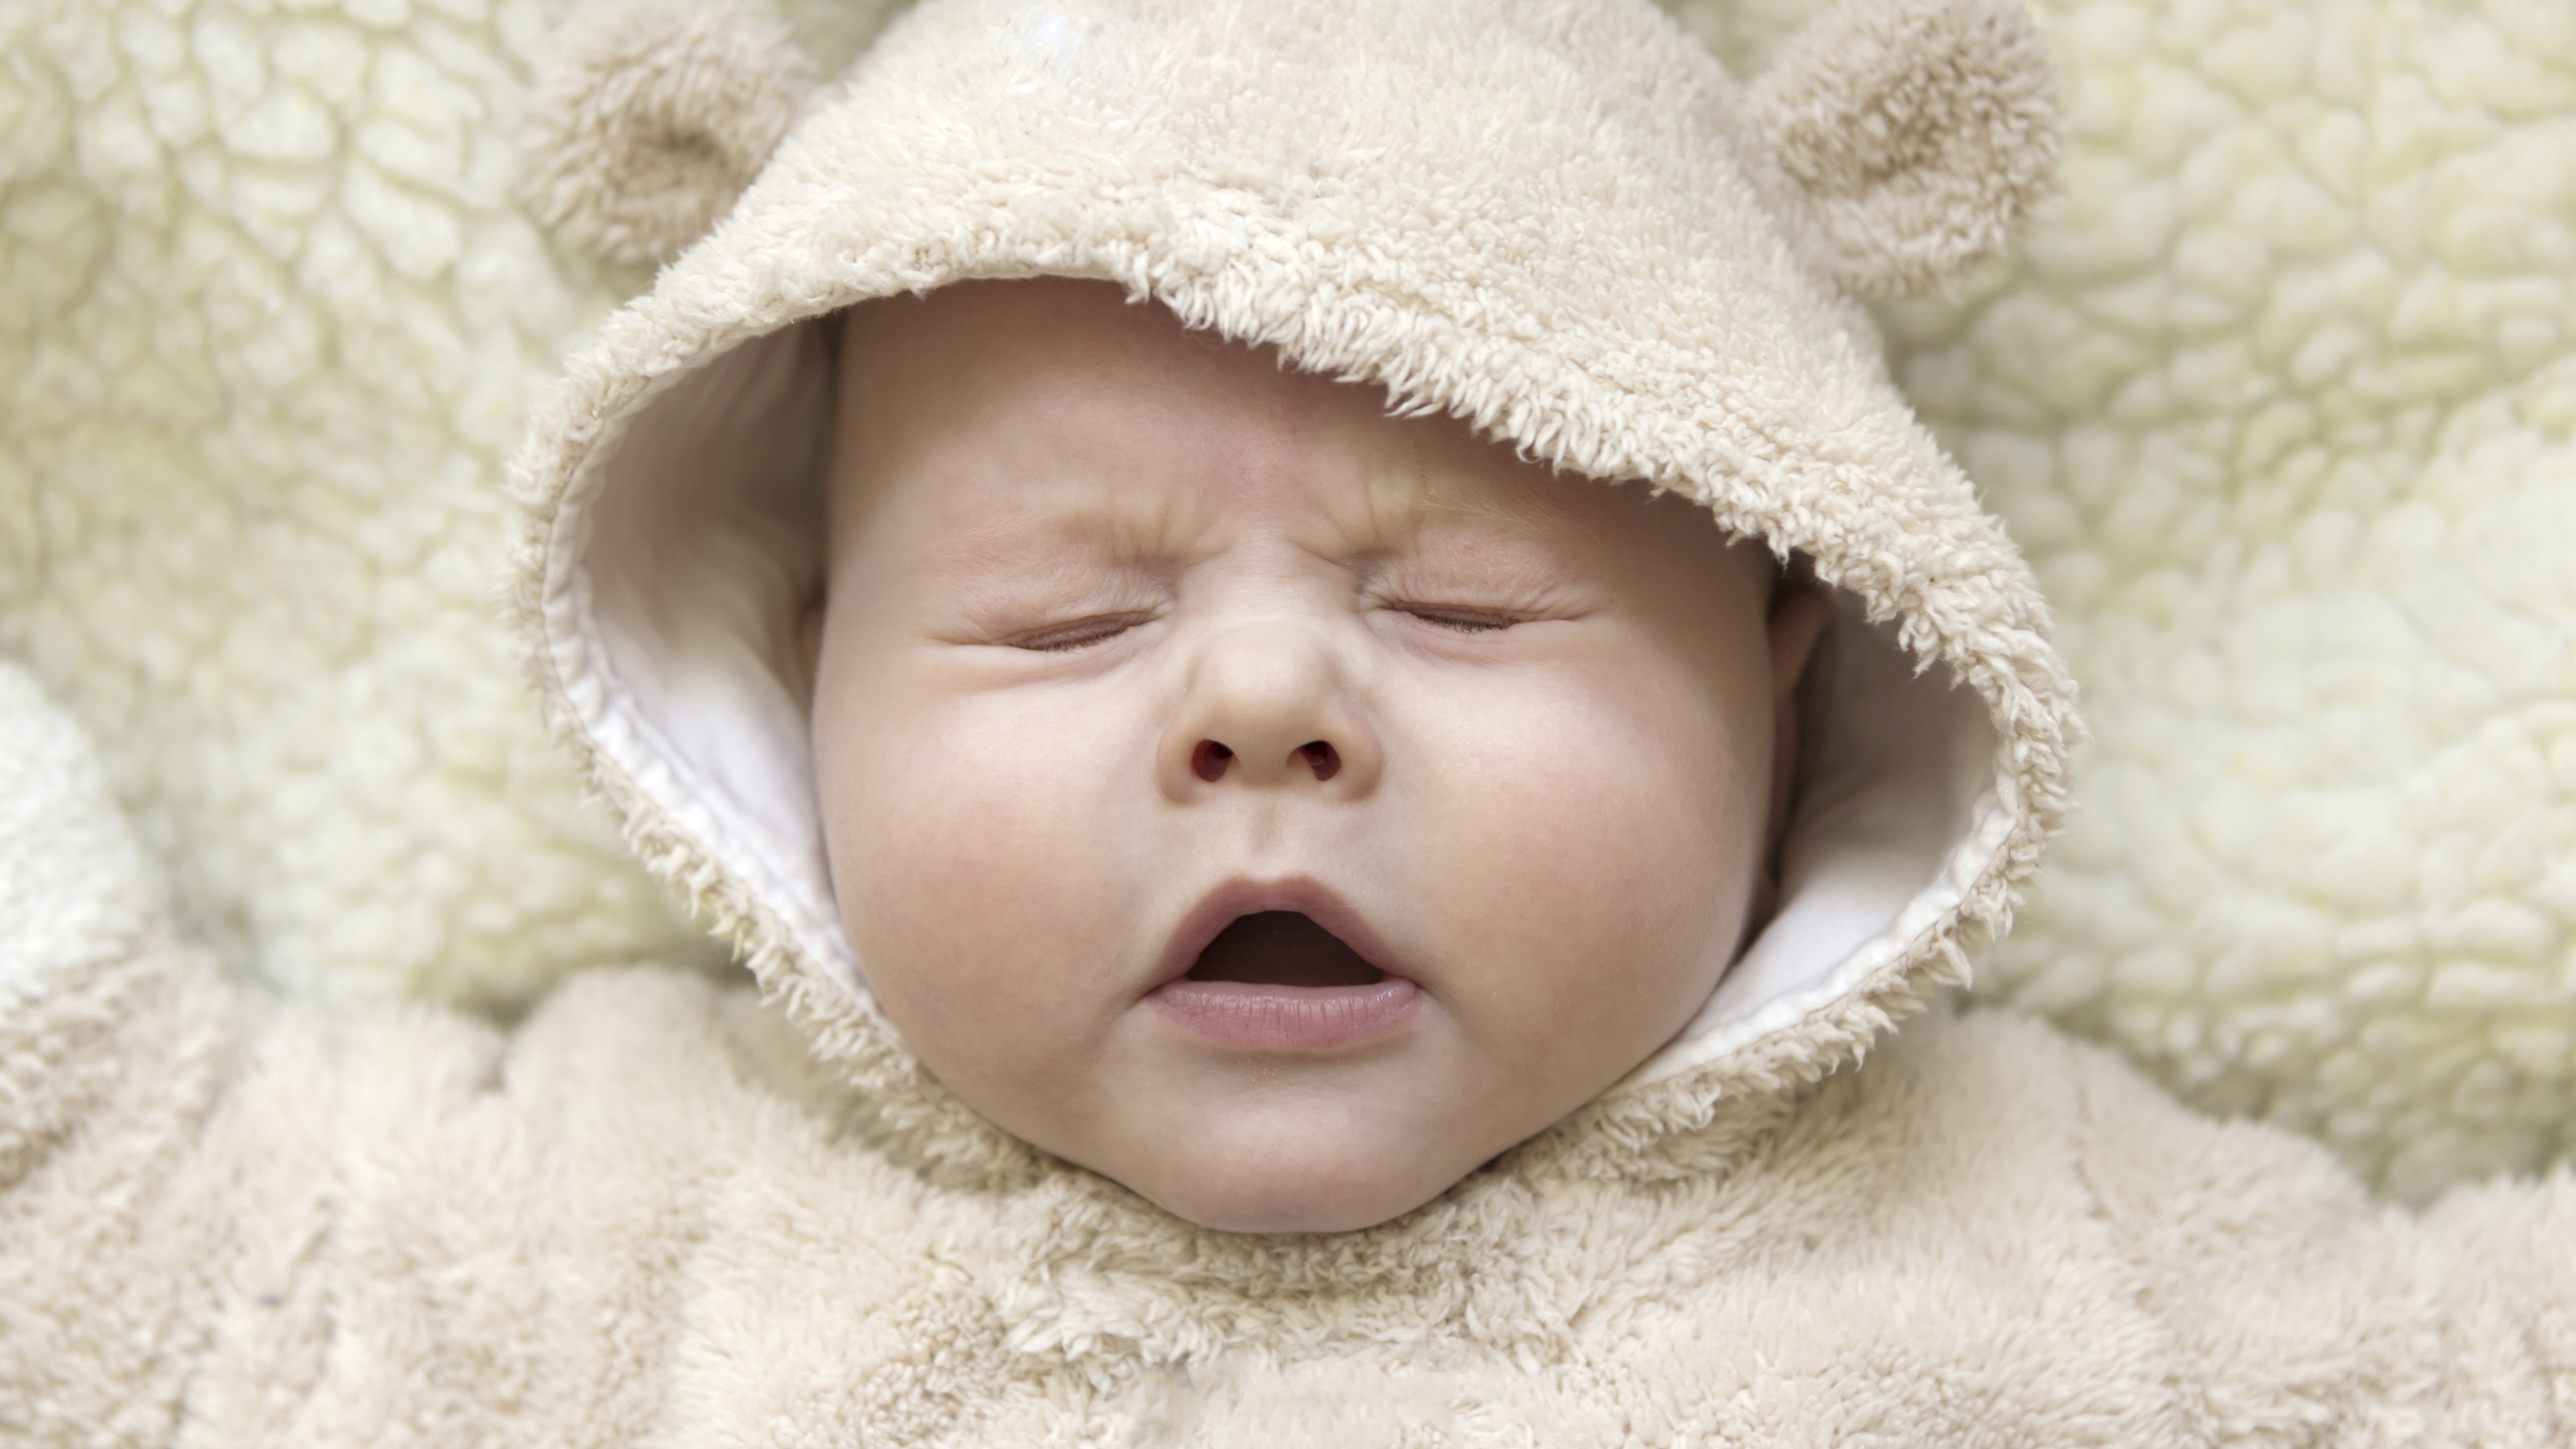 Baby Congestion What Causes It Plus How To Give Baby Relief